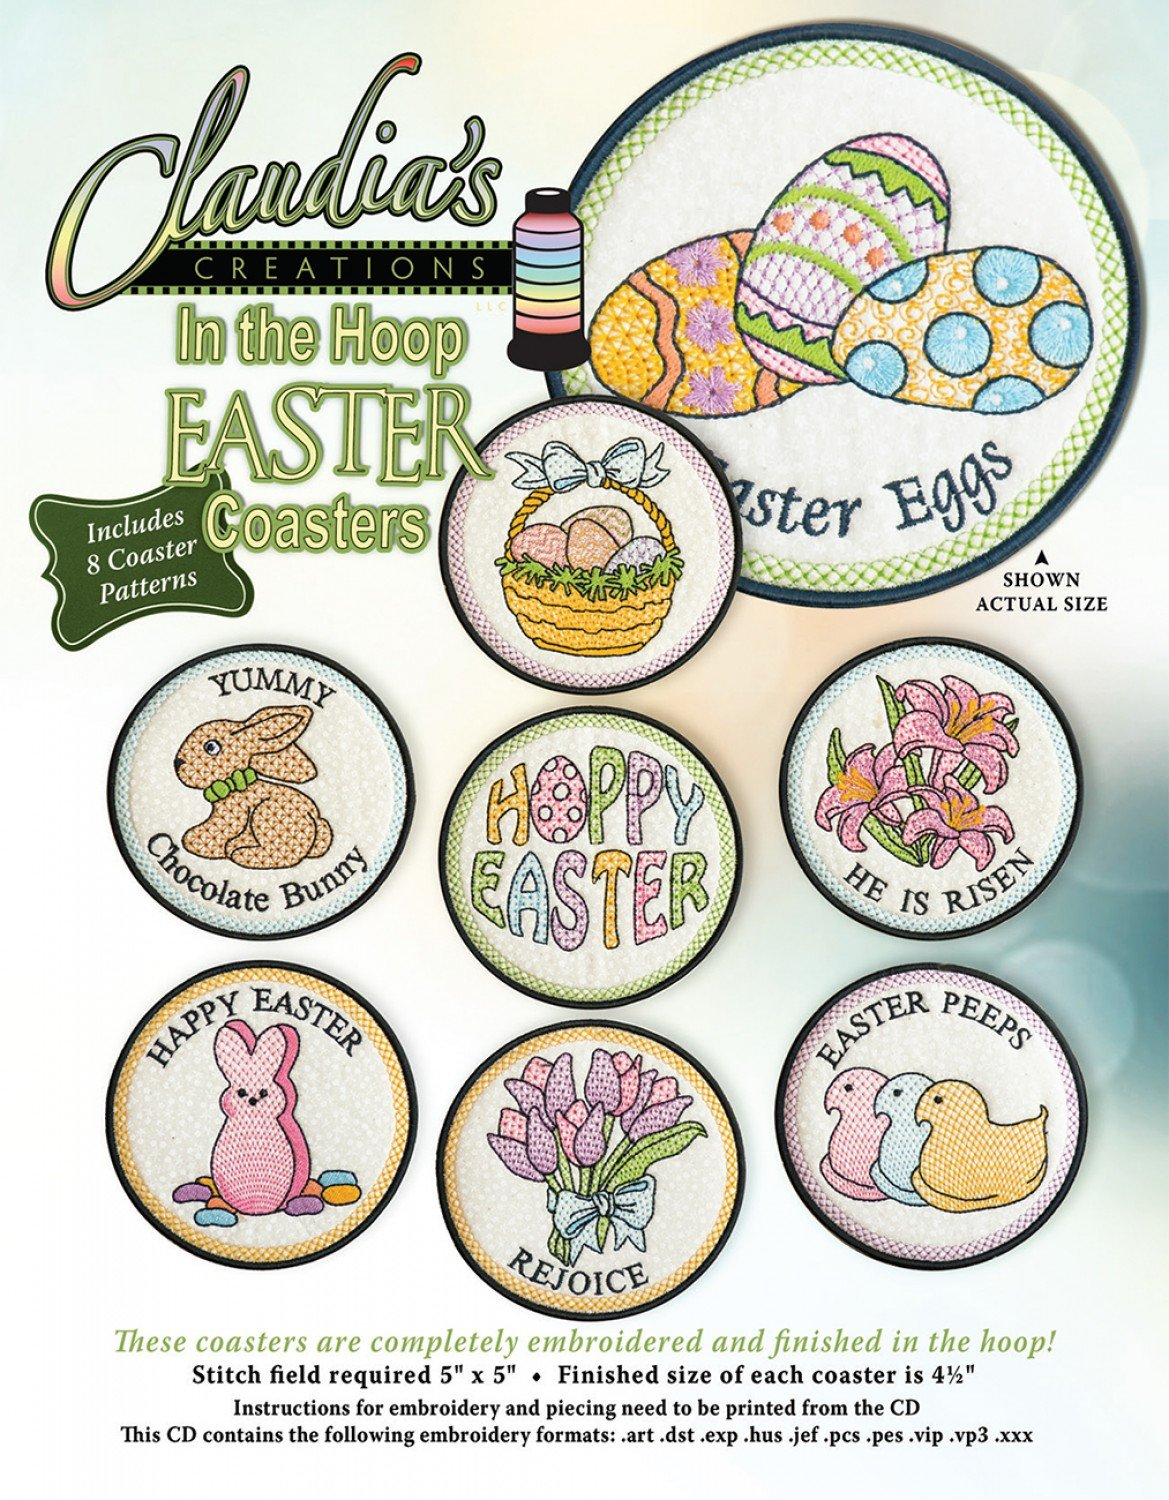 In The Hoop Easter Coasters